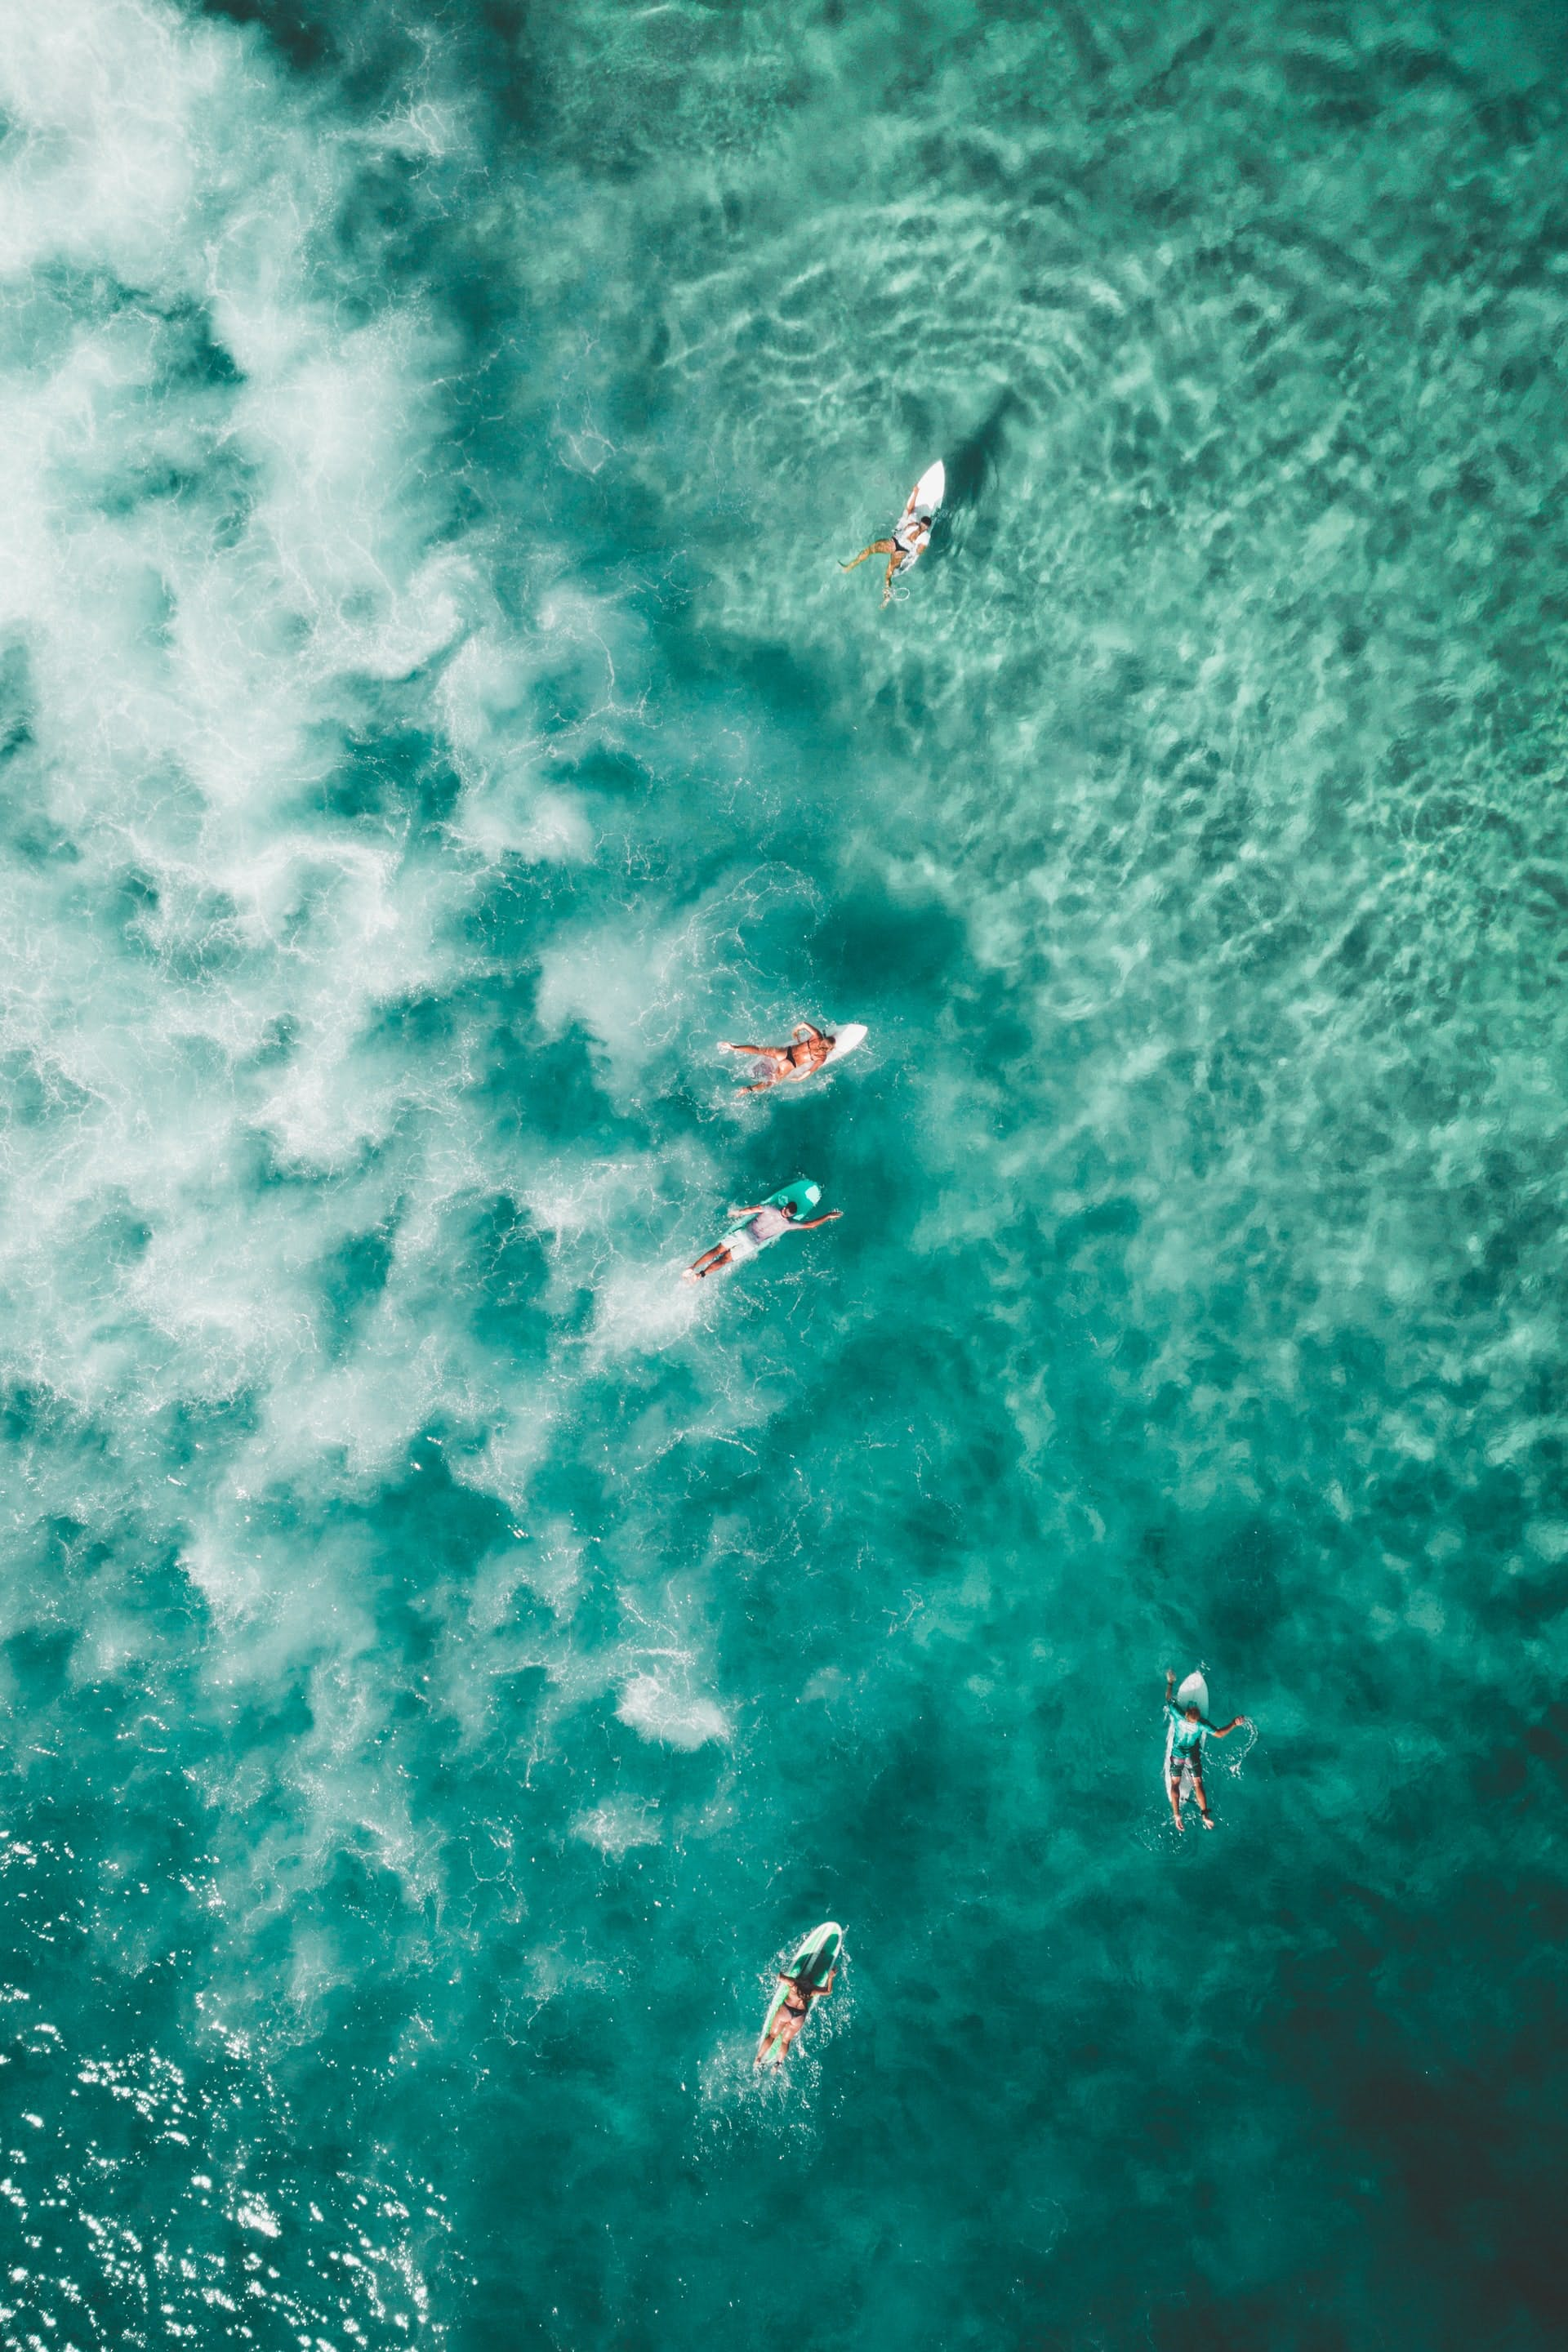 Coworking Spaces For Surfers And Ocean Lovers   Ridestore Magazine